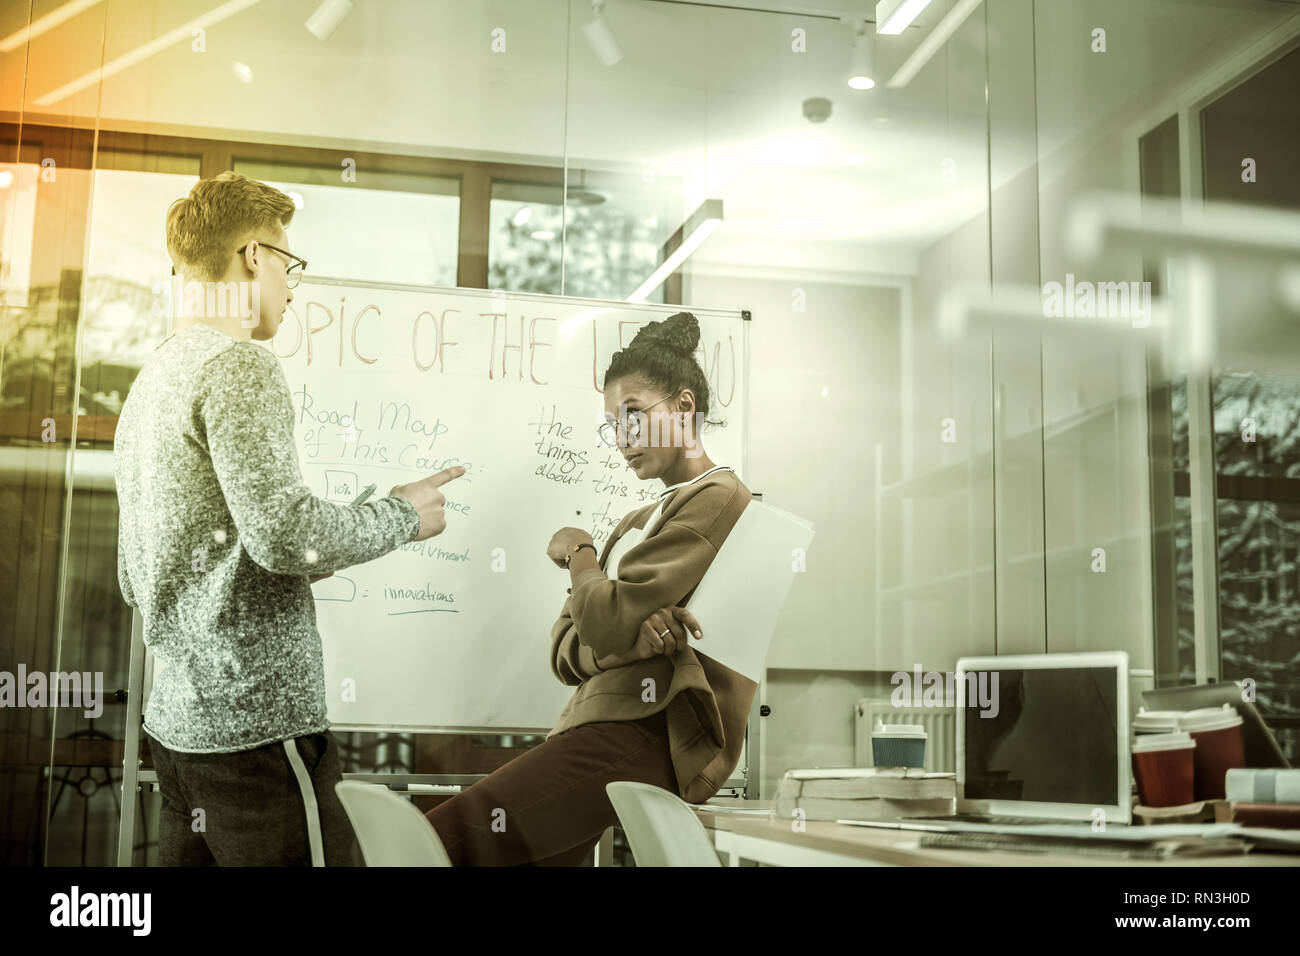 Two coworkers discussing topic of the day in their modern office - Stock Image